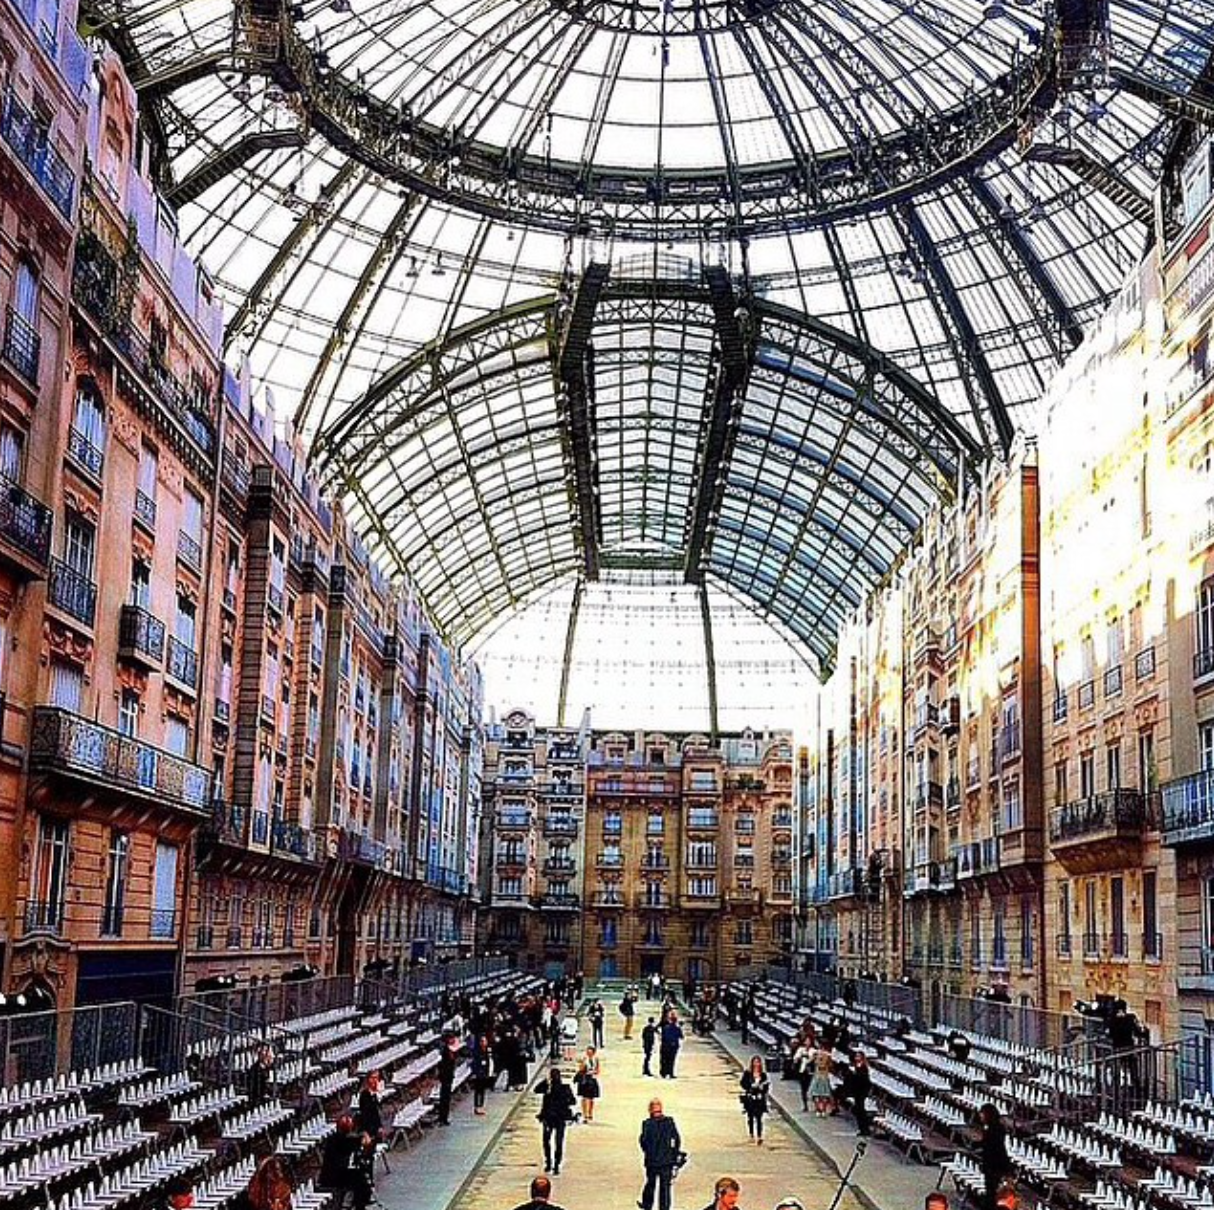 My Instagram feed has been filled with Paris Fashion Week Images. This is the amazing setting for the Chanel show.